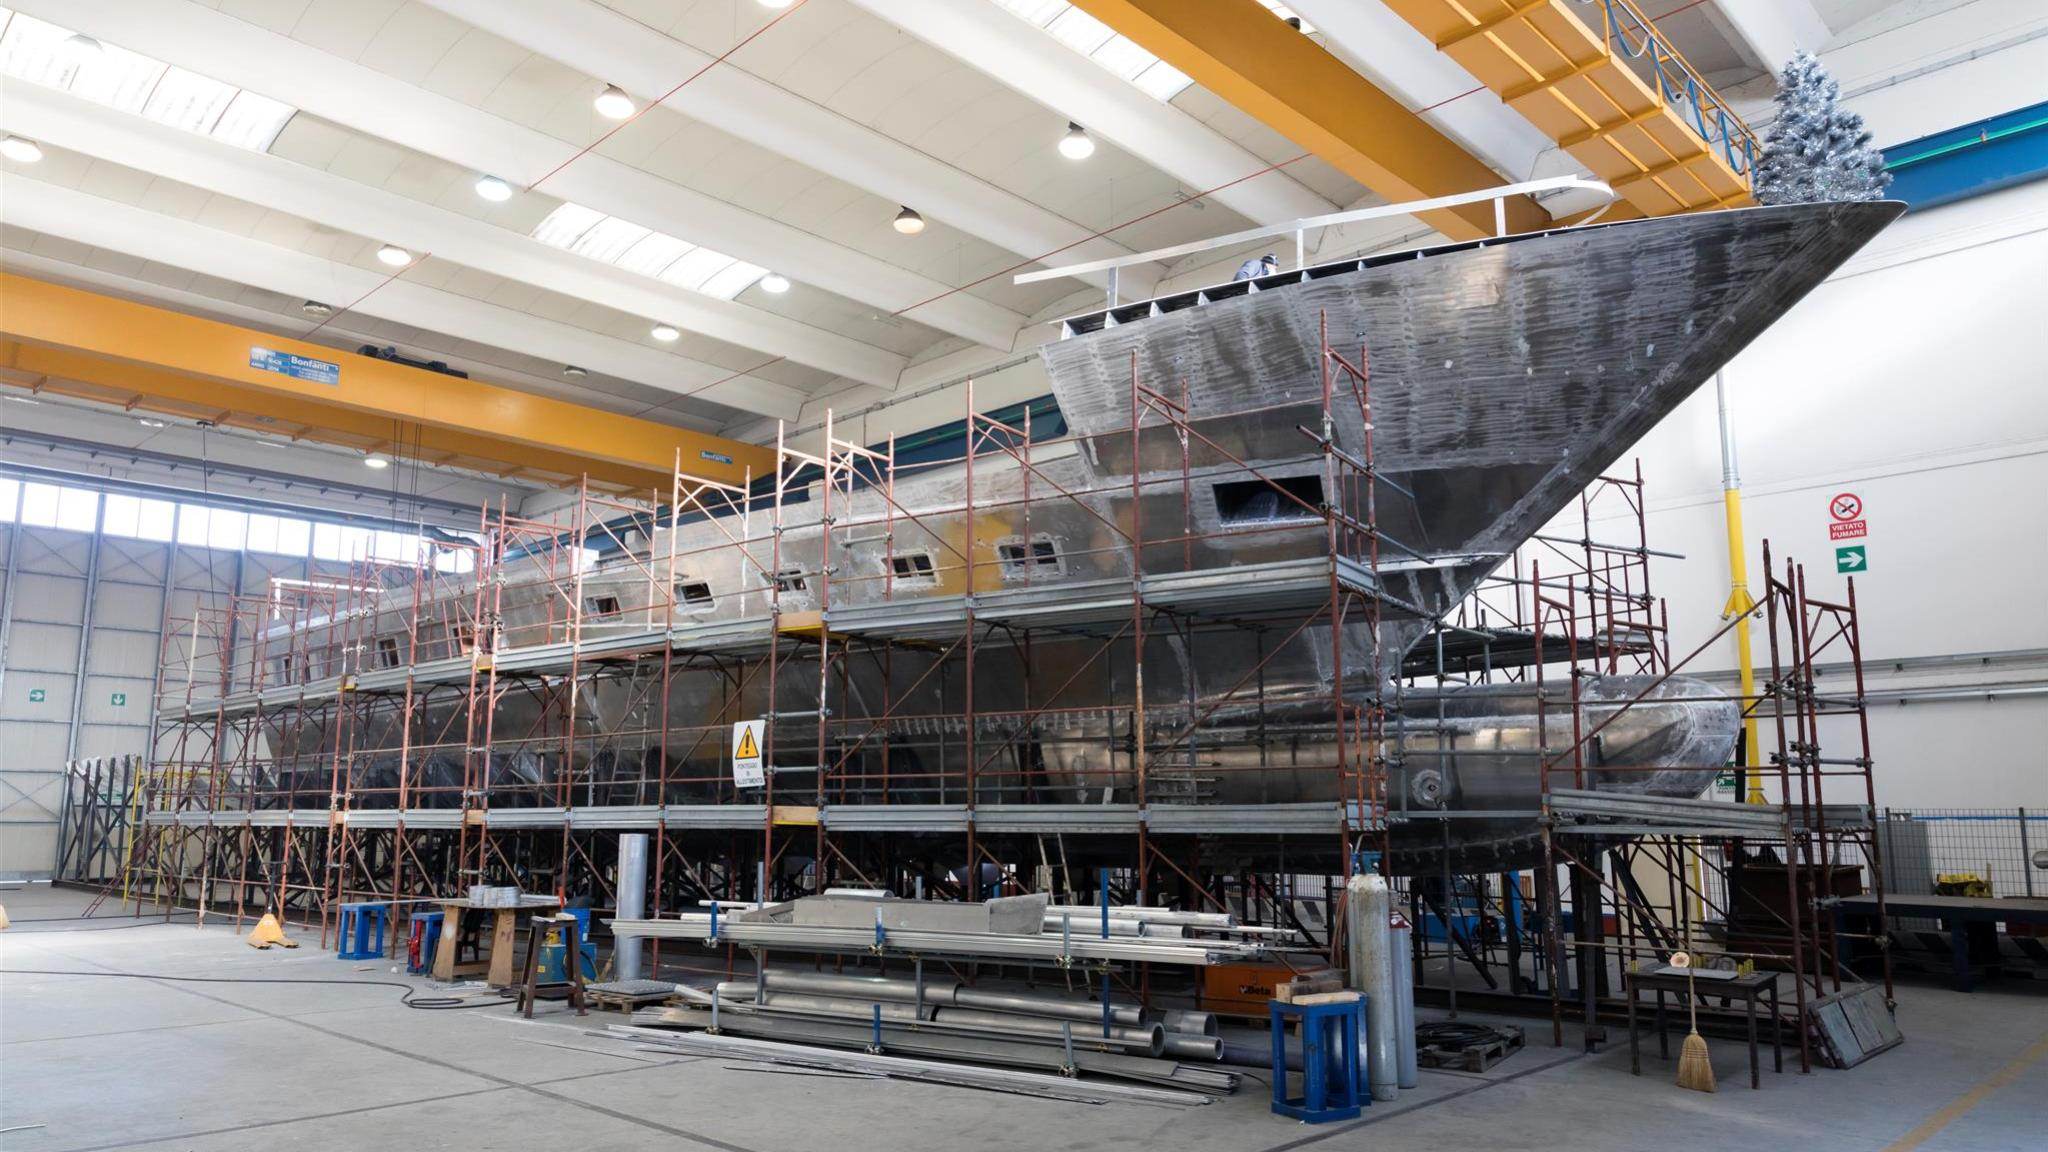 mangusta gransport 45 motoryacht overmarine 45m 2019 under construction